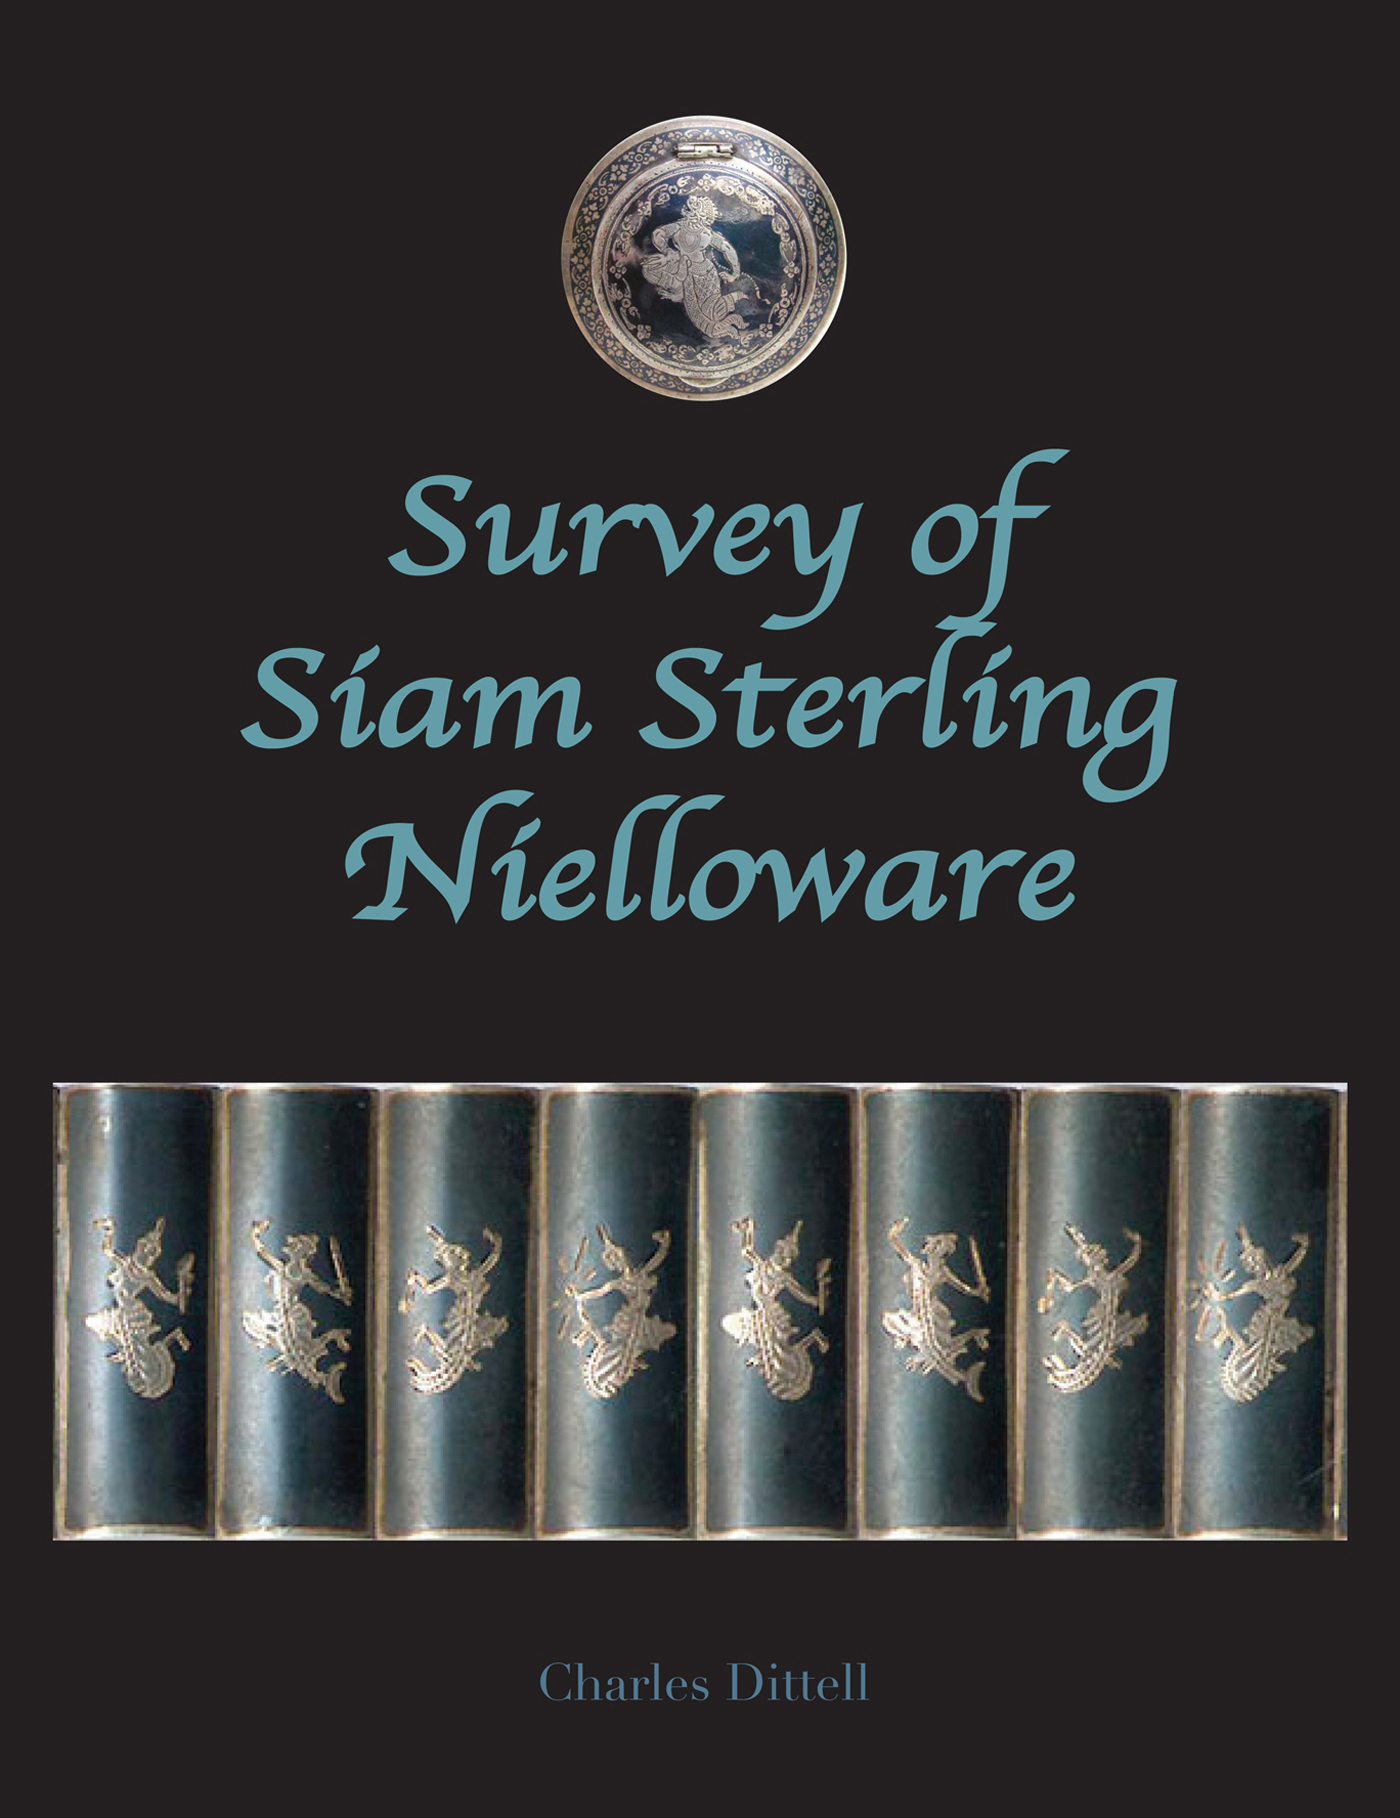 Survey of Siam Sterling Nielloware